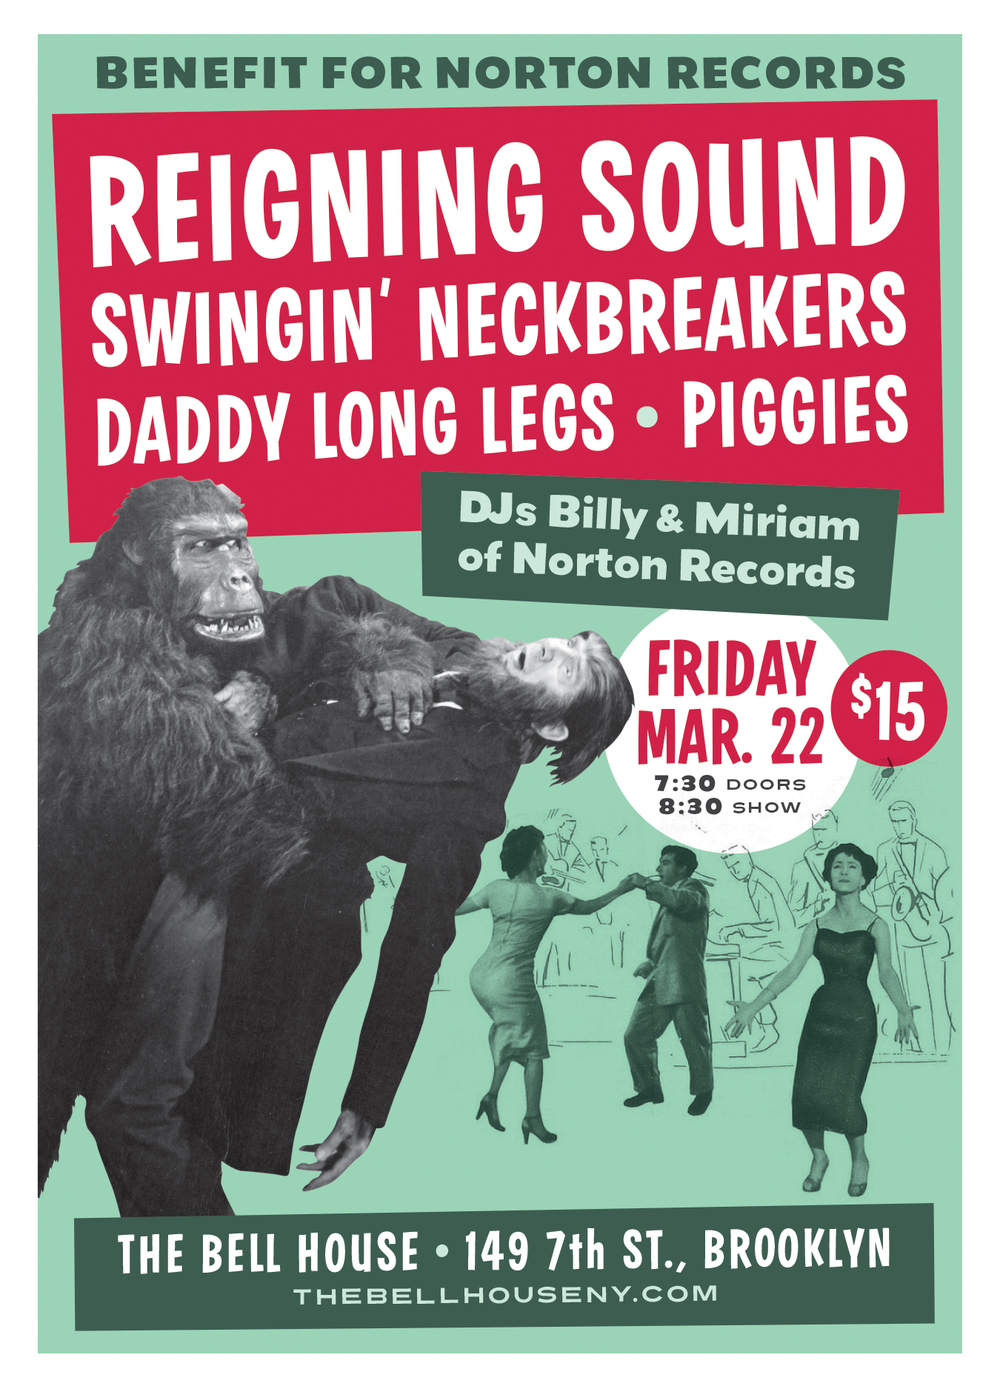 Norton Records benefit poster